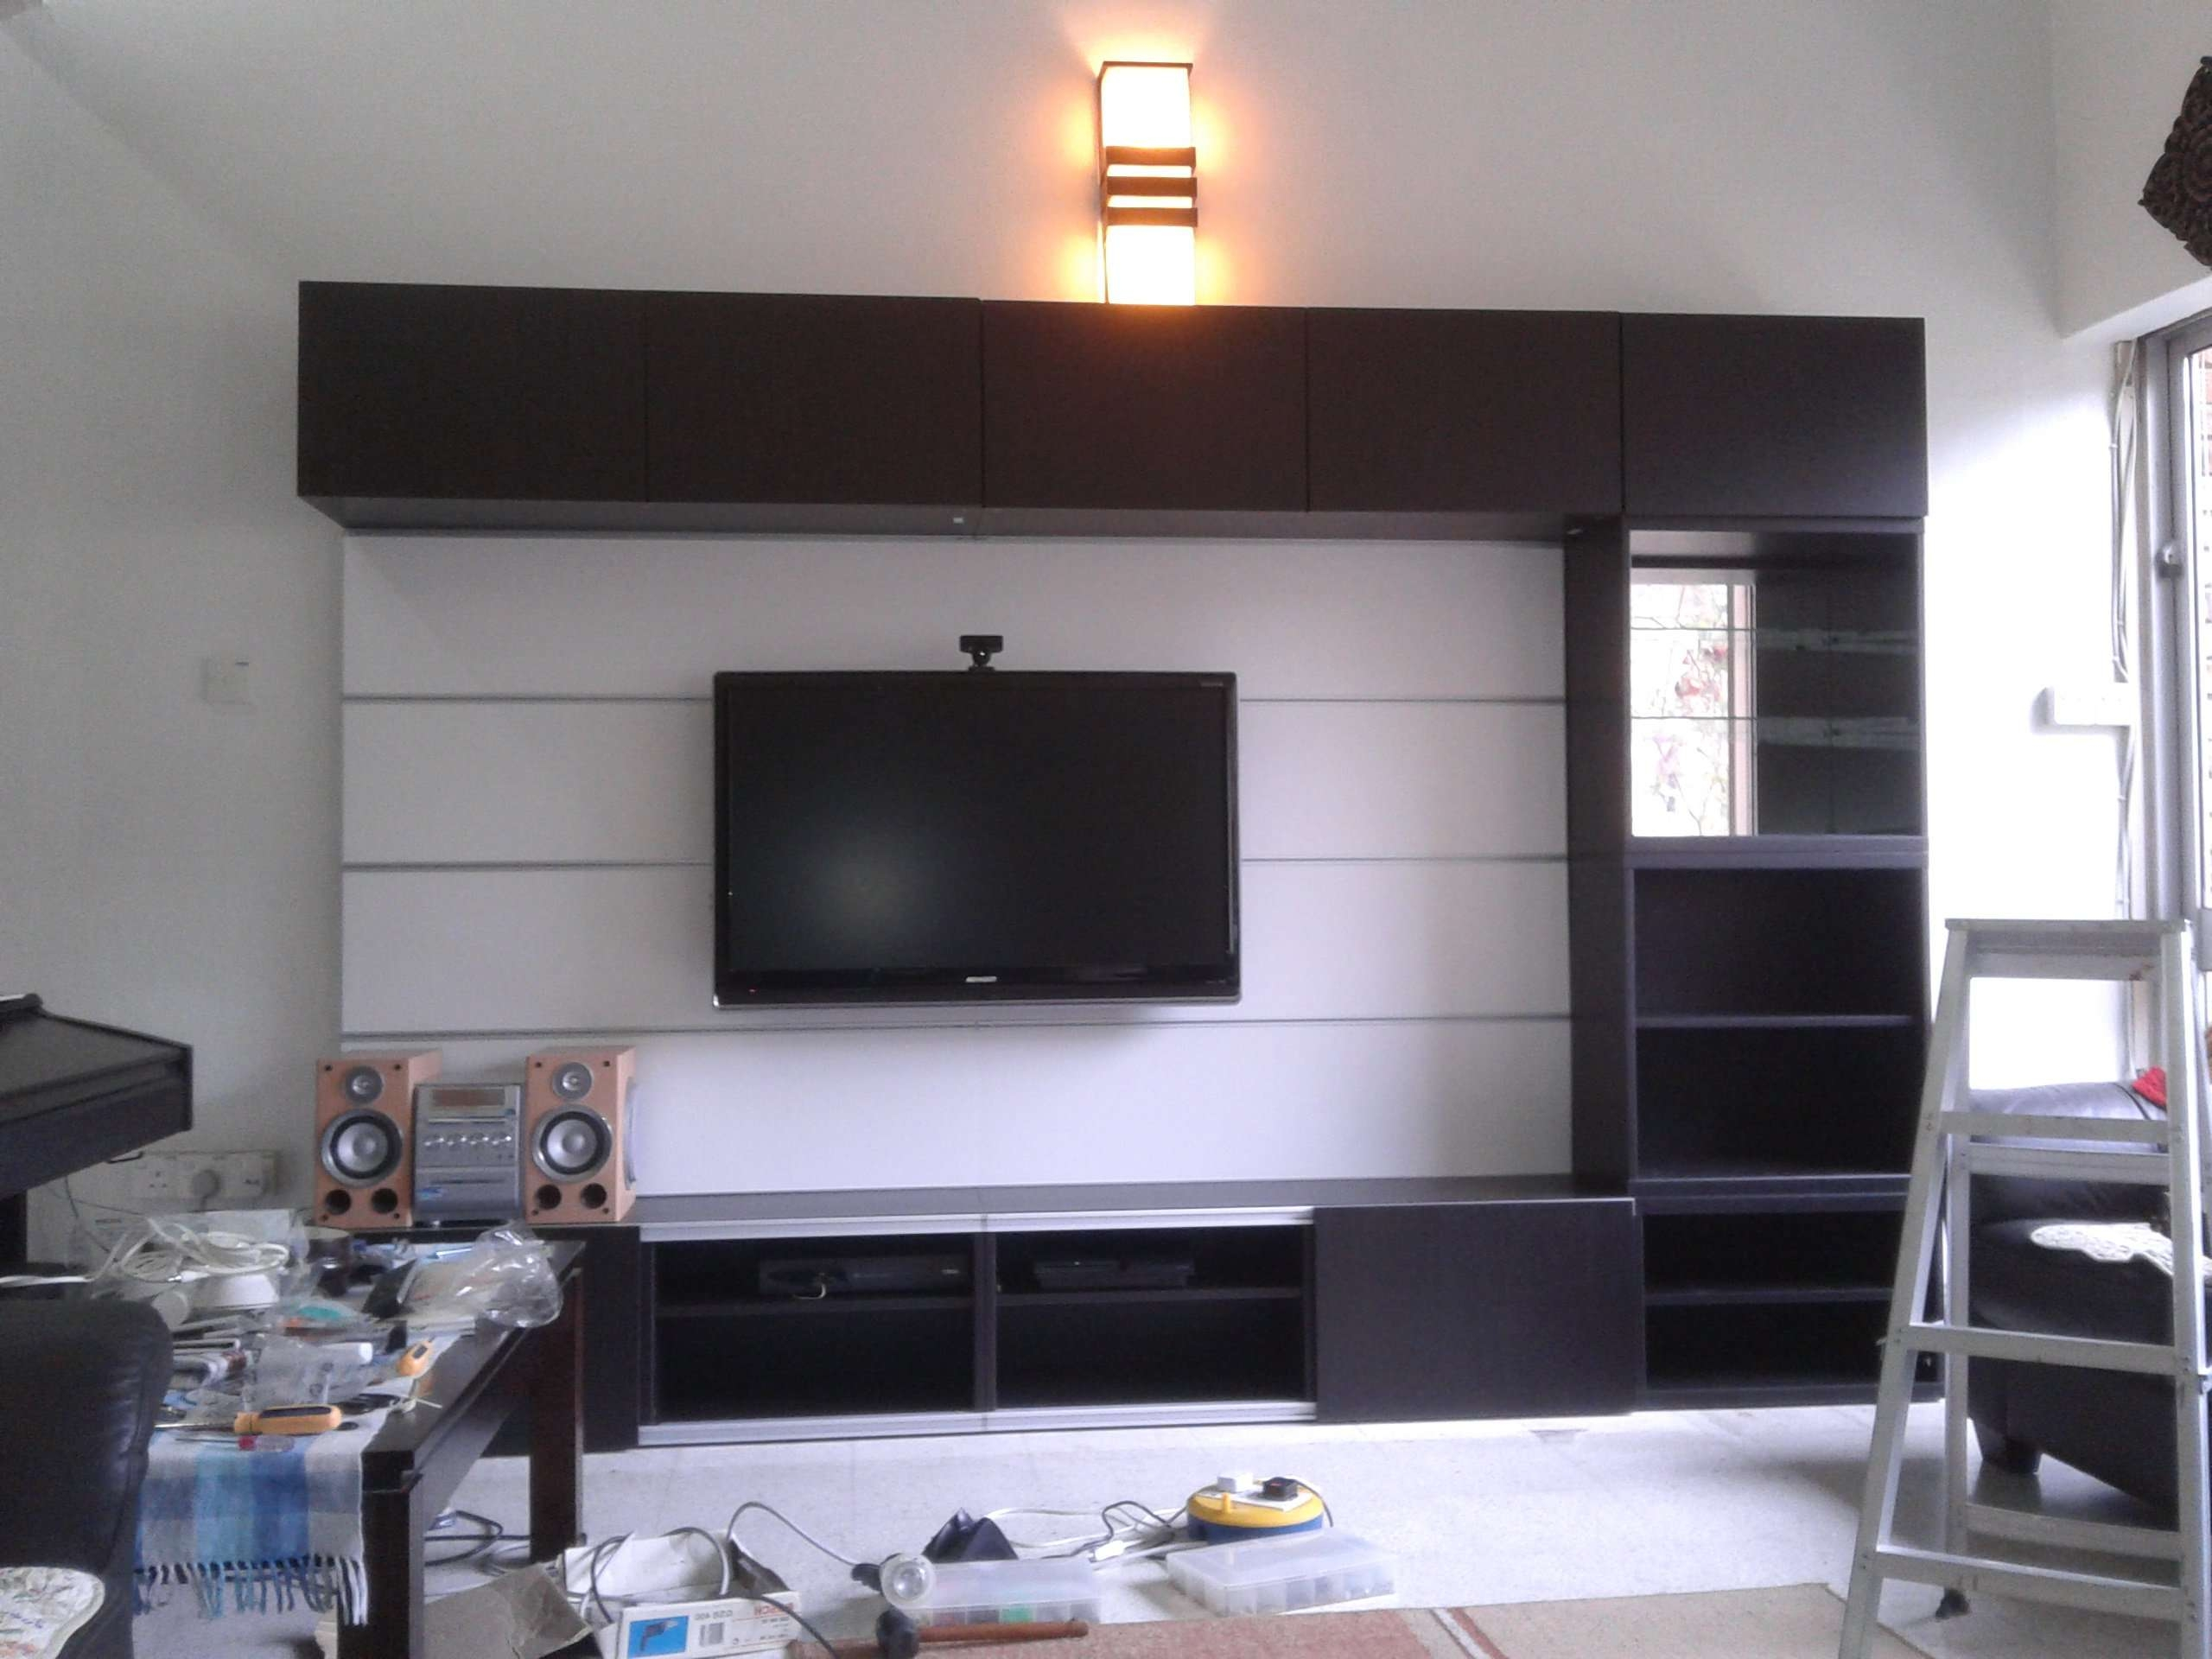 Ikea Besta Tv Stand With Black Wooden Cabinet And Selves Also Regarding Stylish Tv Cabinets (Gallery 17 of 20)